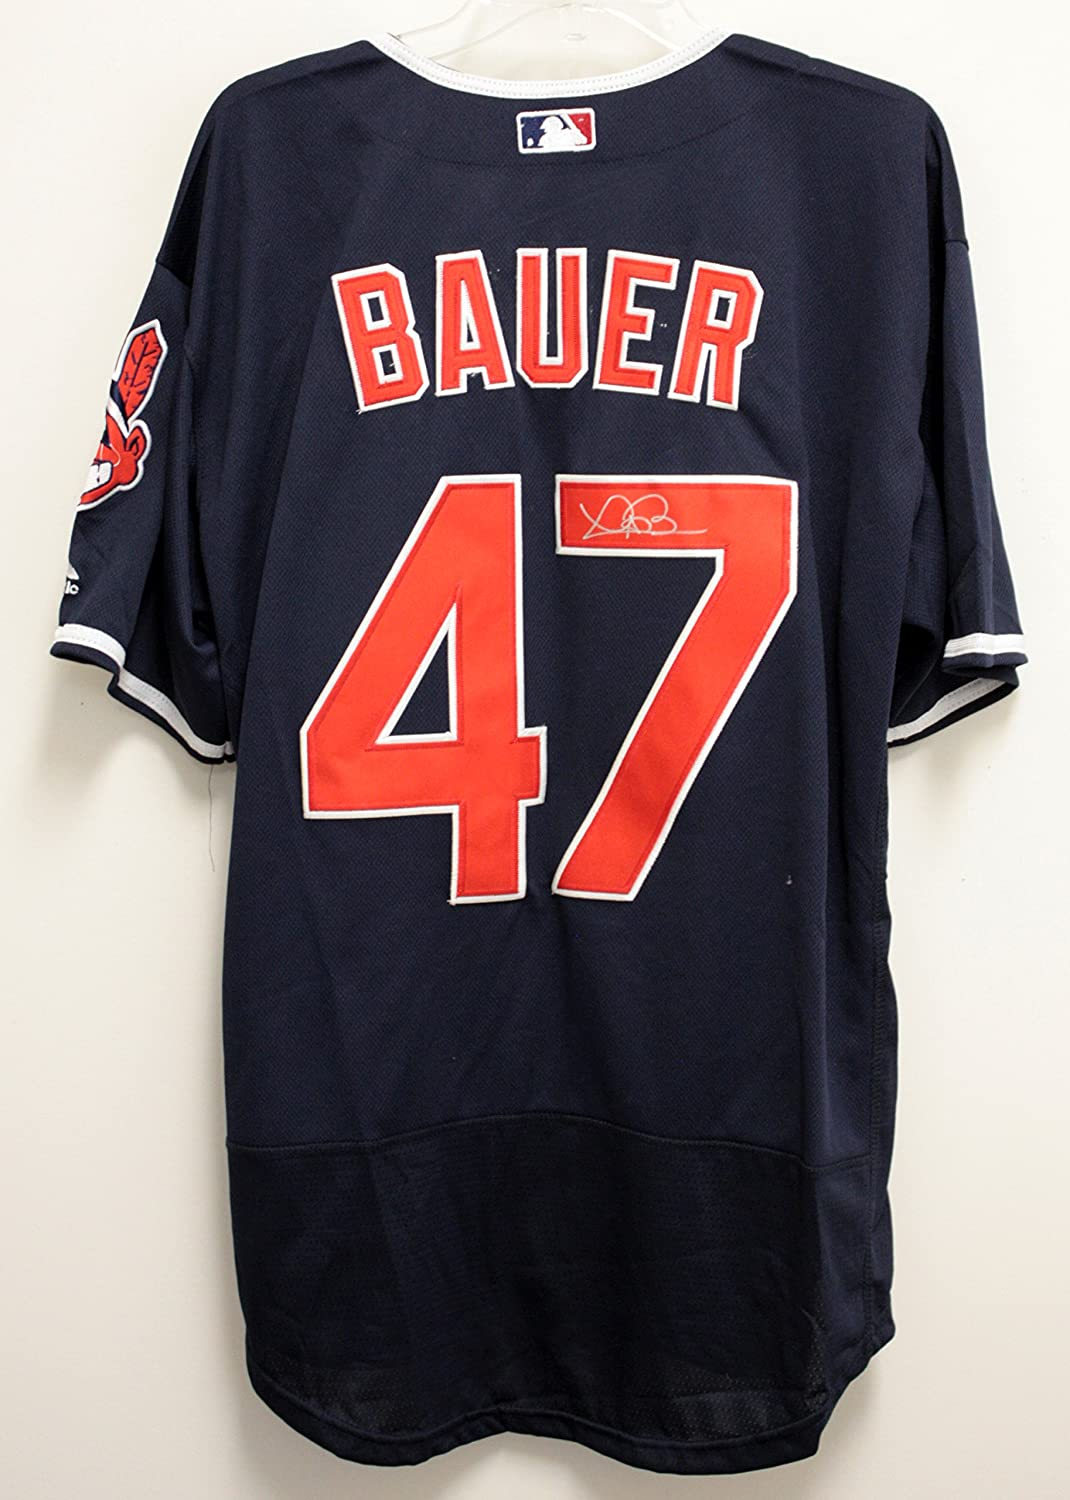 050876804 ... Youth Majestic 55 Authentic Alternate MLB Jersey Trevor Bauer Cleveland  Indians Signed Autographed Bue 47 Jersey Size 48 at Amazons Sports  Collectibles ...